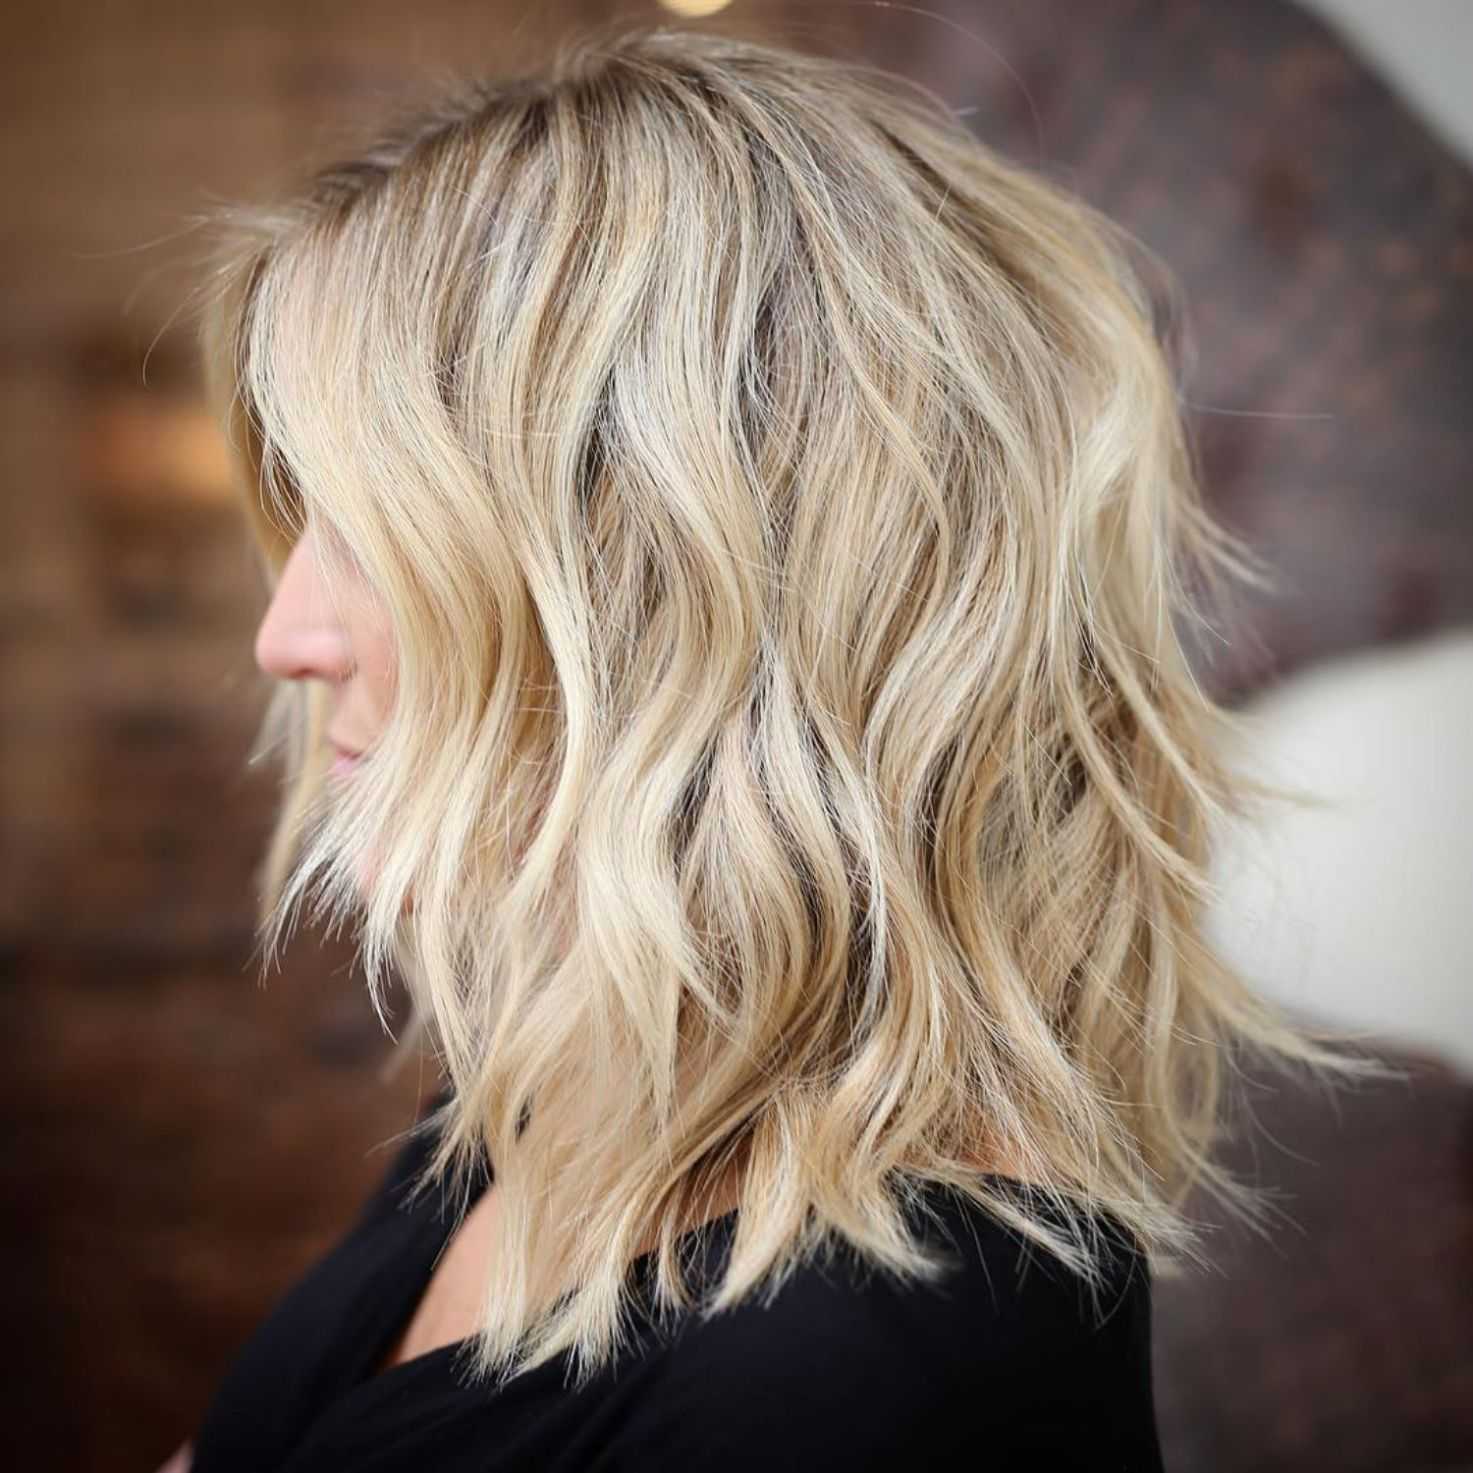 30 Marvelous Photo Of Back Of Short Hairstyles For Women Haircuts For Wavy Hair Wavy Bob Haircuts Thick Hair Styles